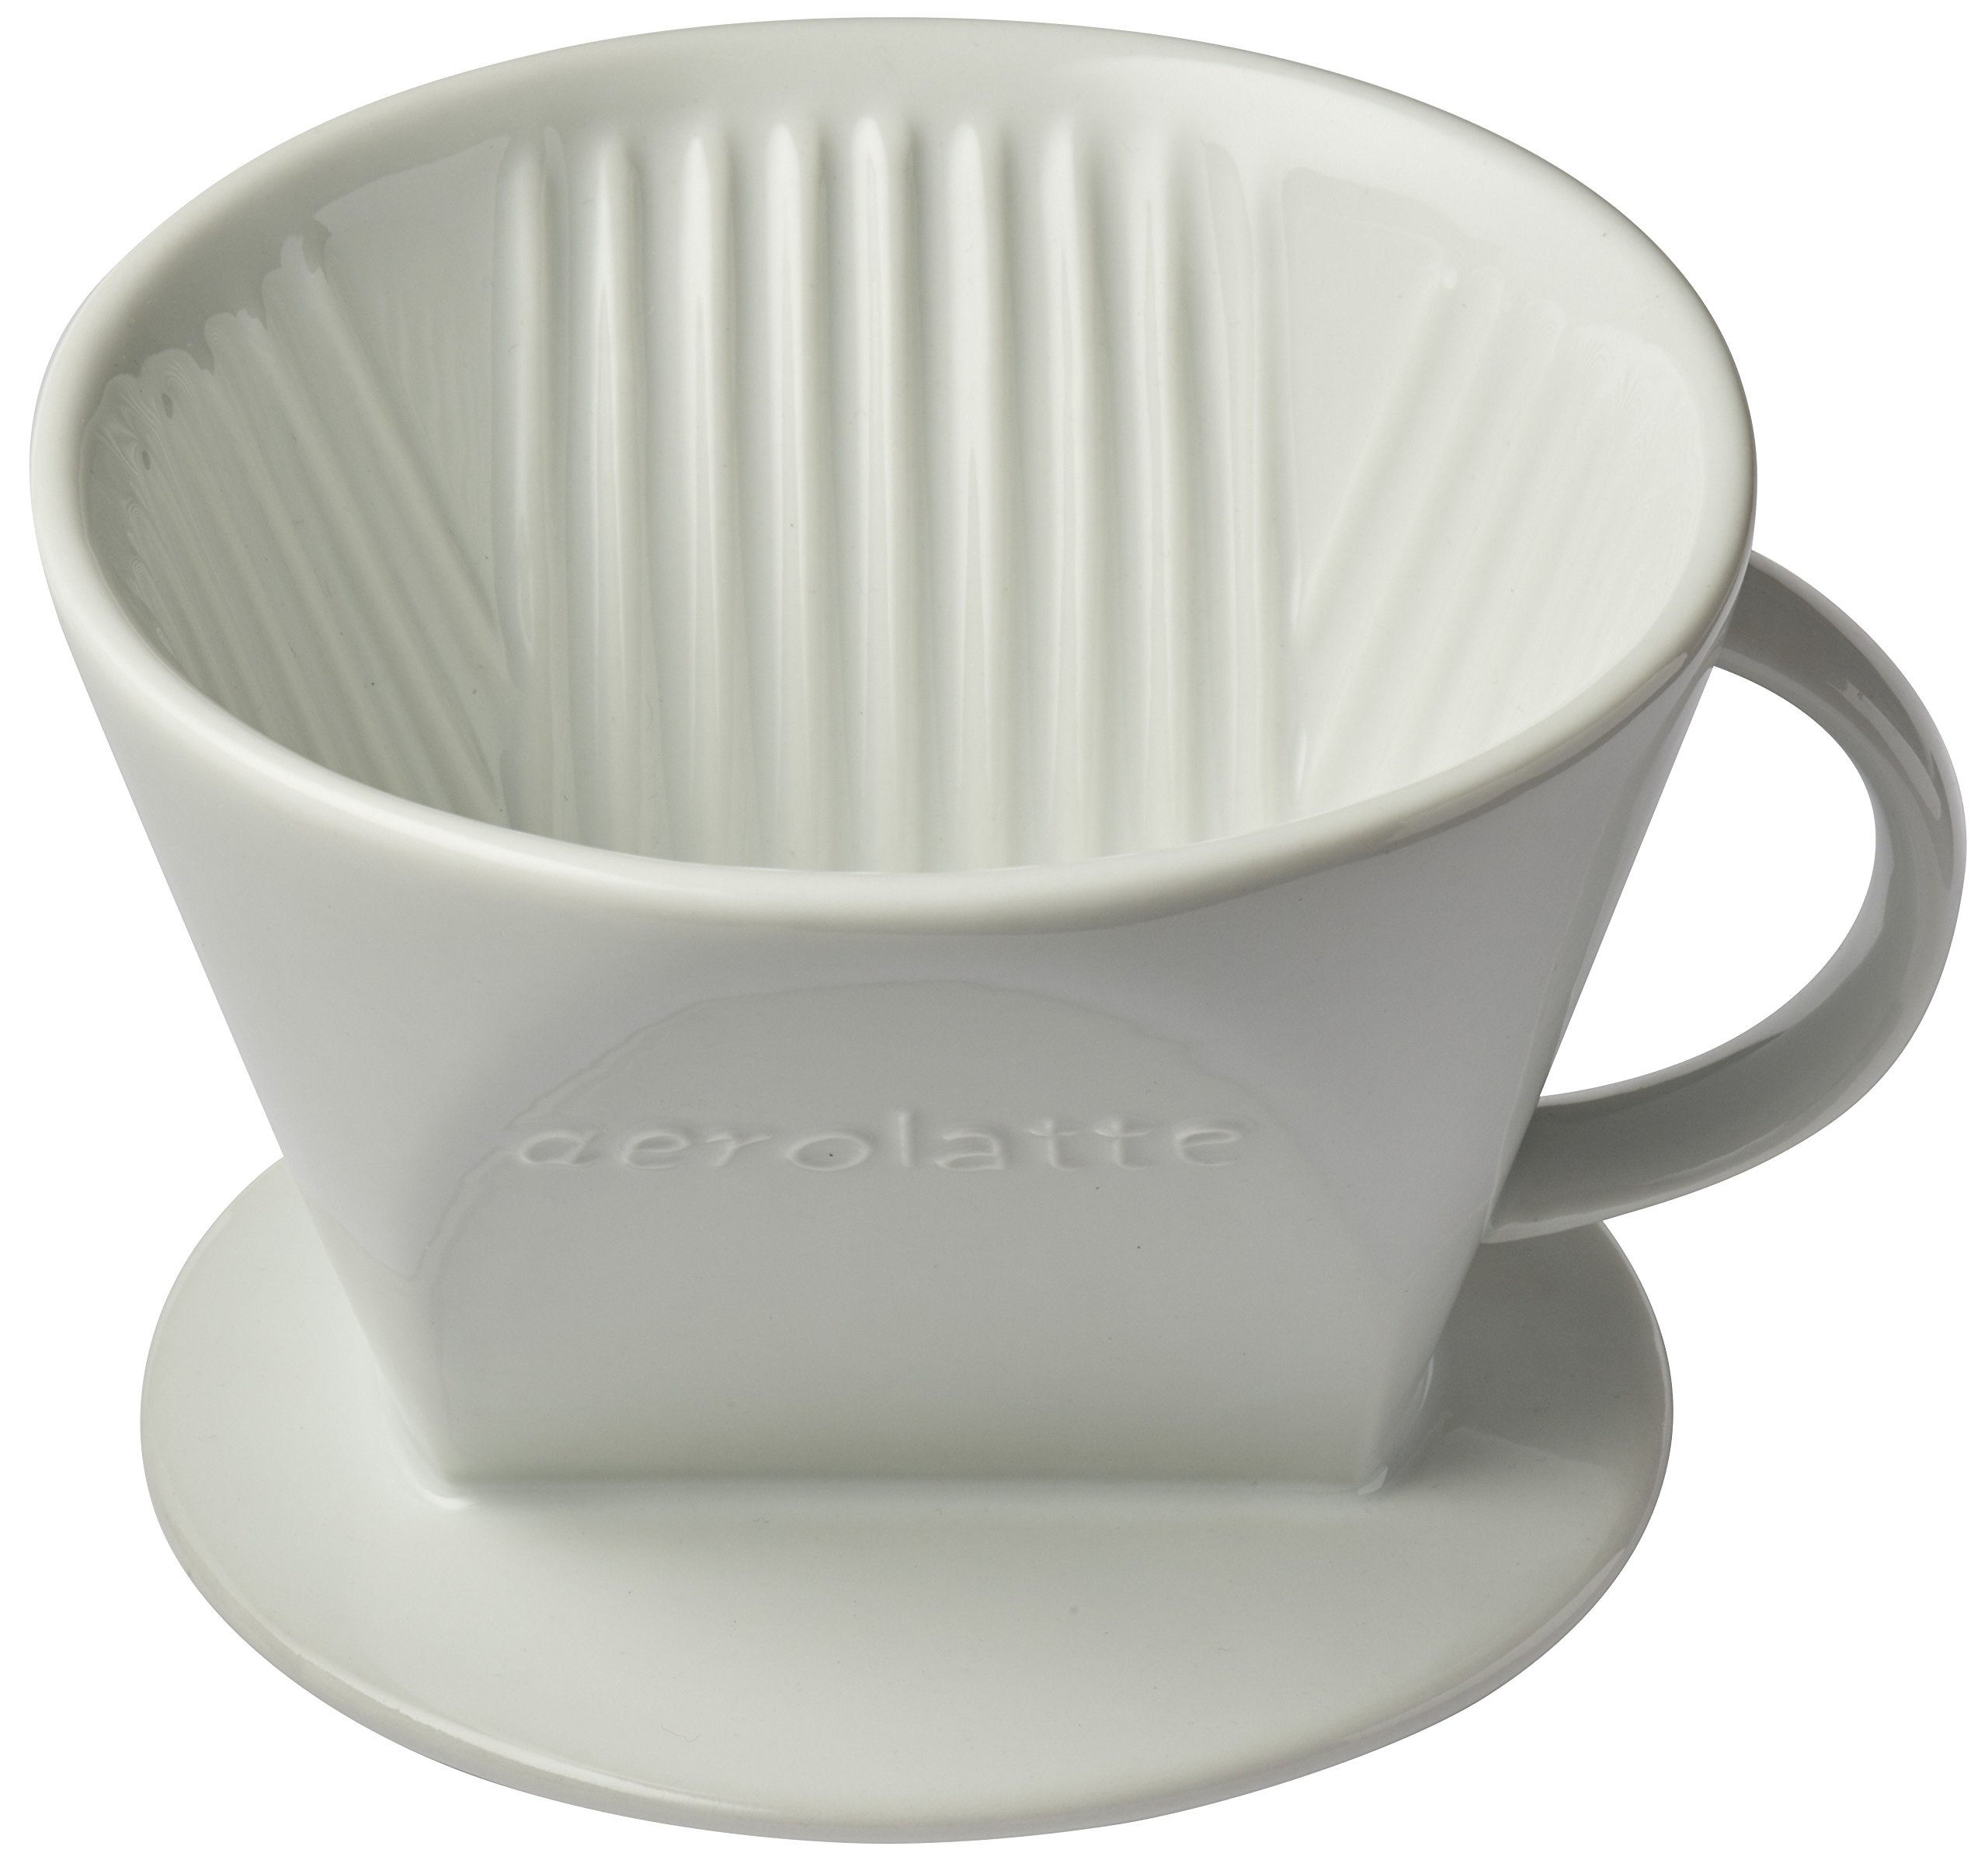 Aerolatte Pour Over Coffee Dripper Reusable Filter Cone Brewer, Number 4-Size, Brews 8 to 12-Cups